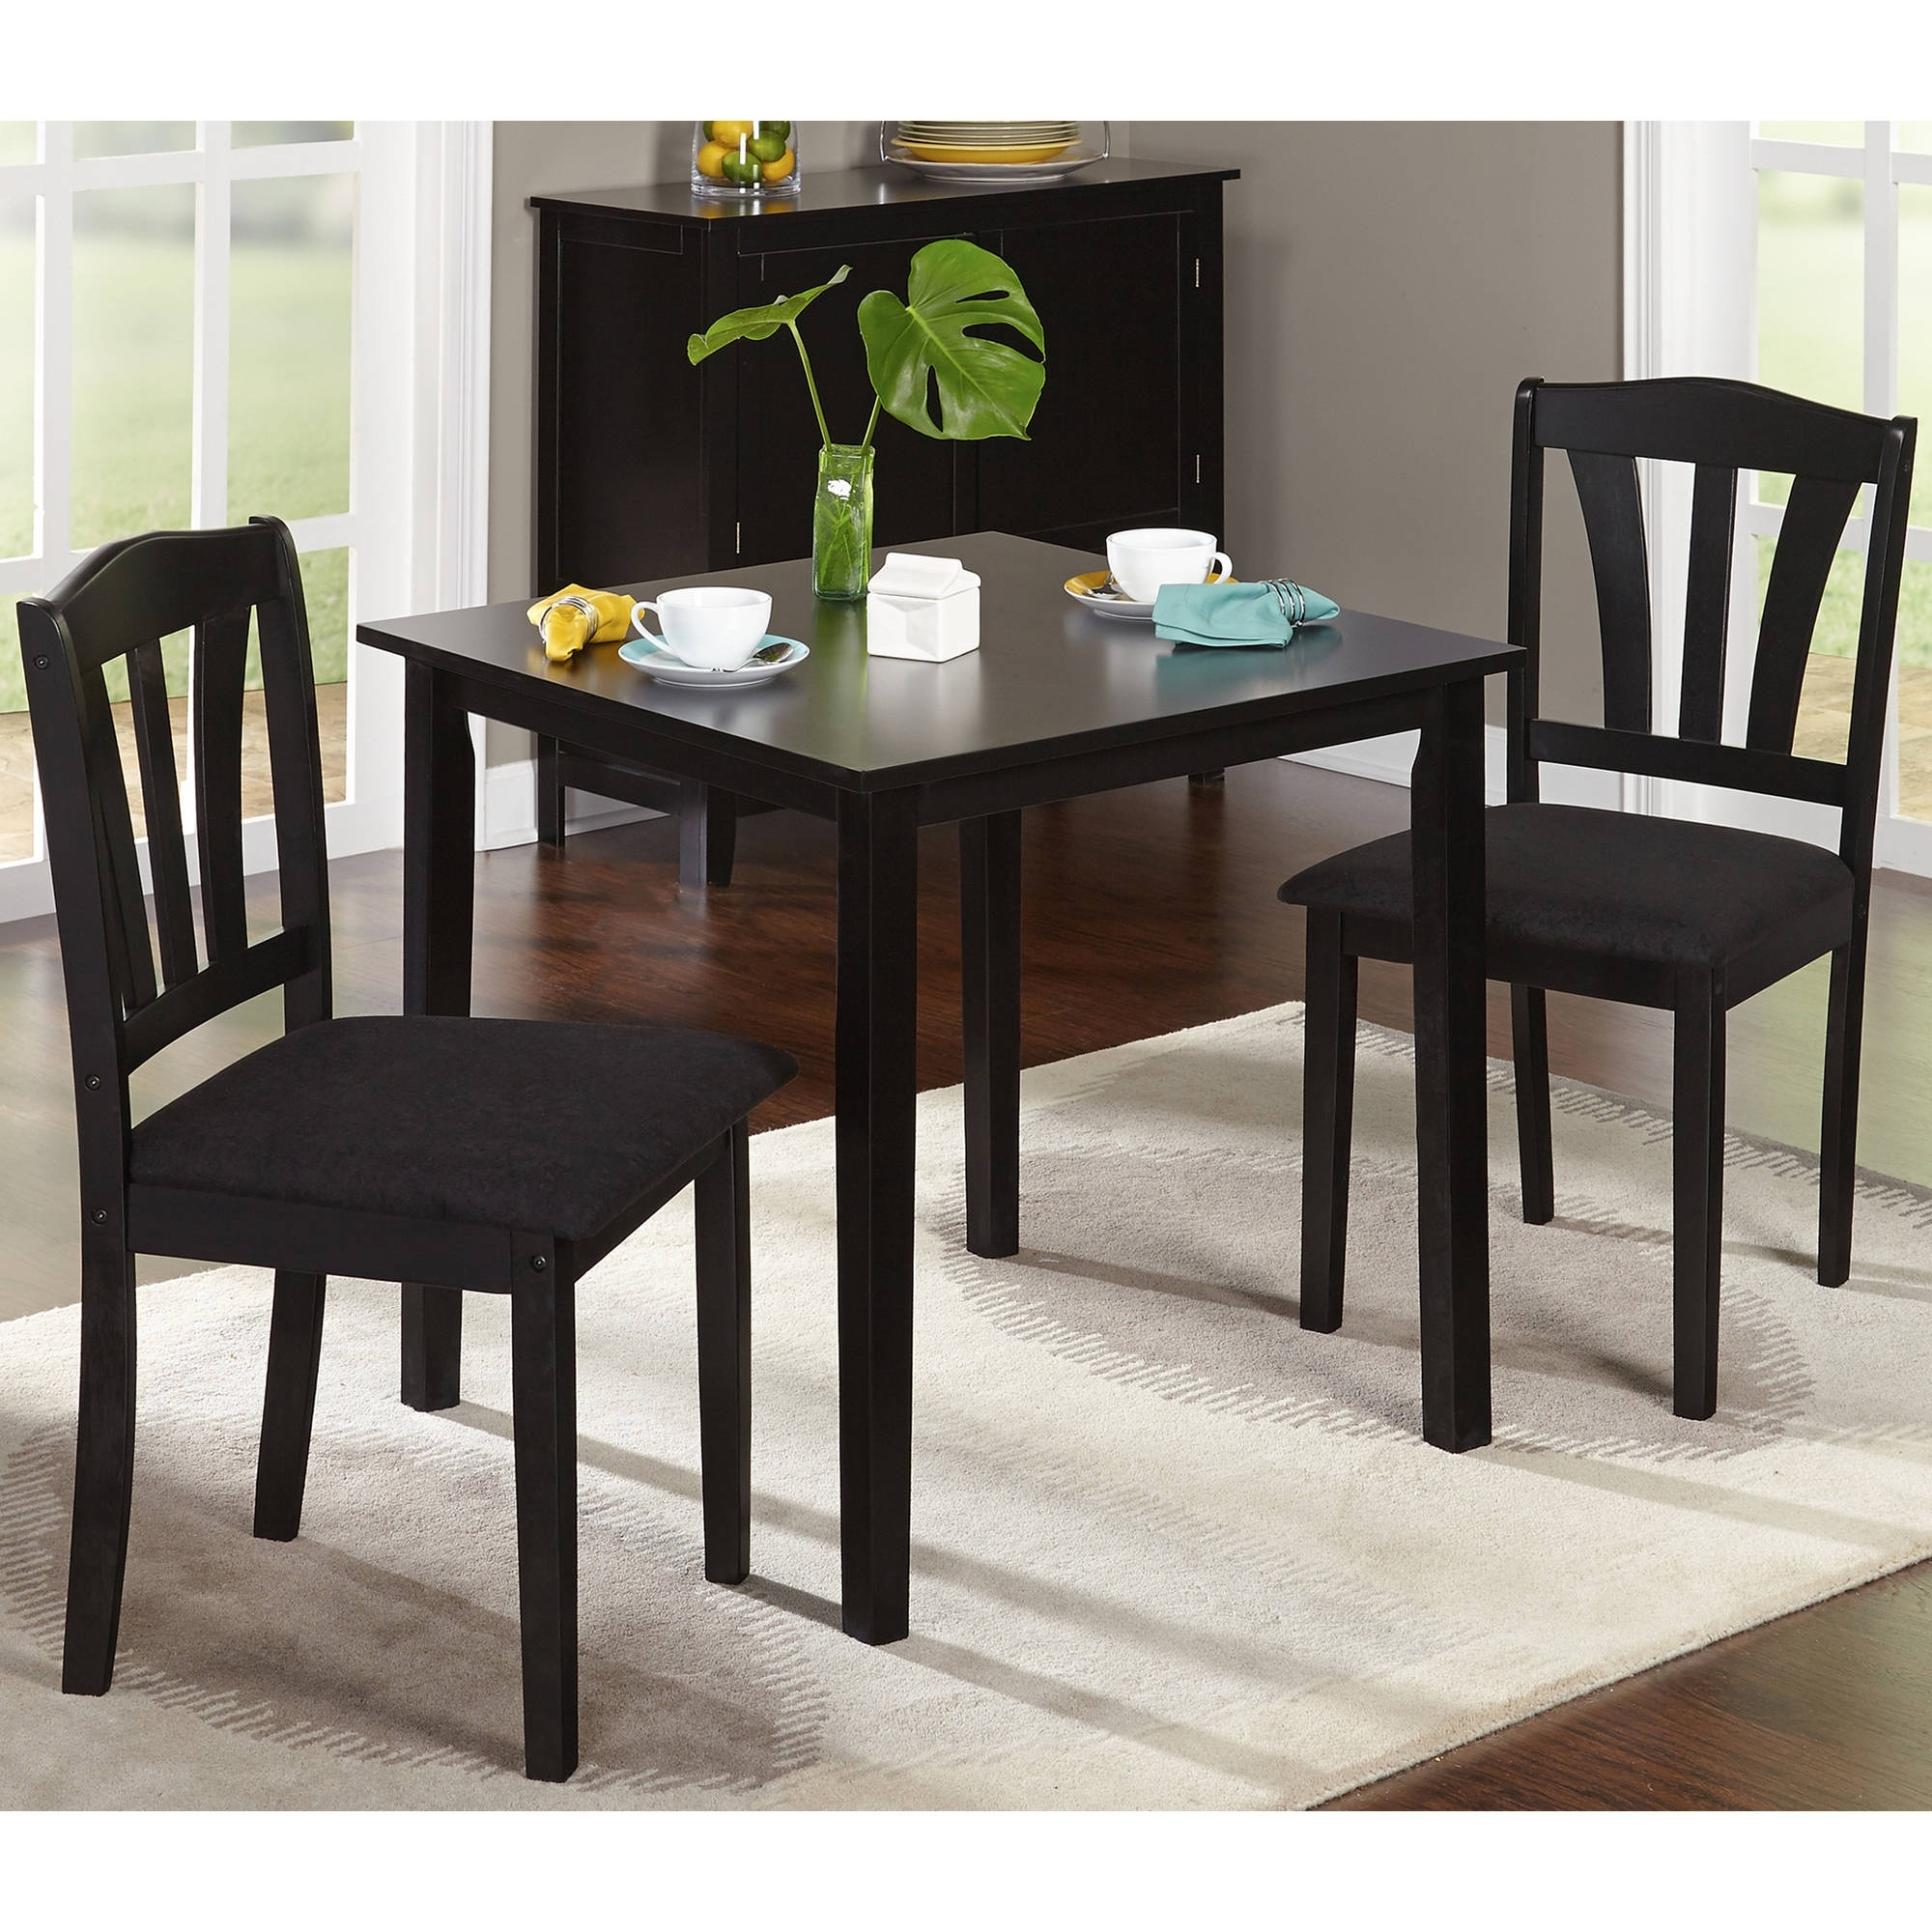 Famous Metropolitan 3 Piece Dining Set, Multiple Finishes – Walmart Pertaining To Dining Table Sets For  (View 16 of 25)